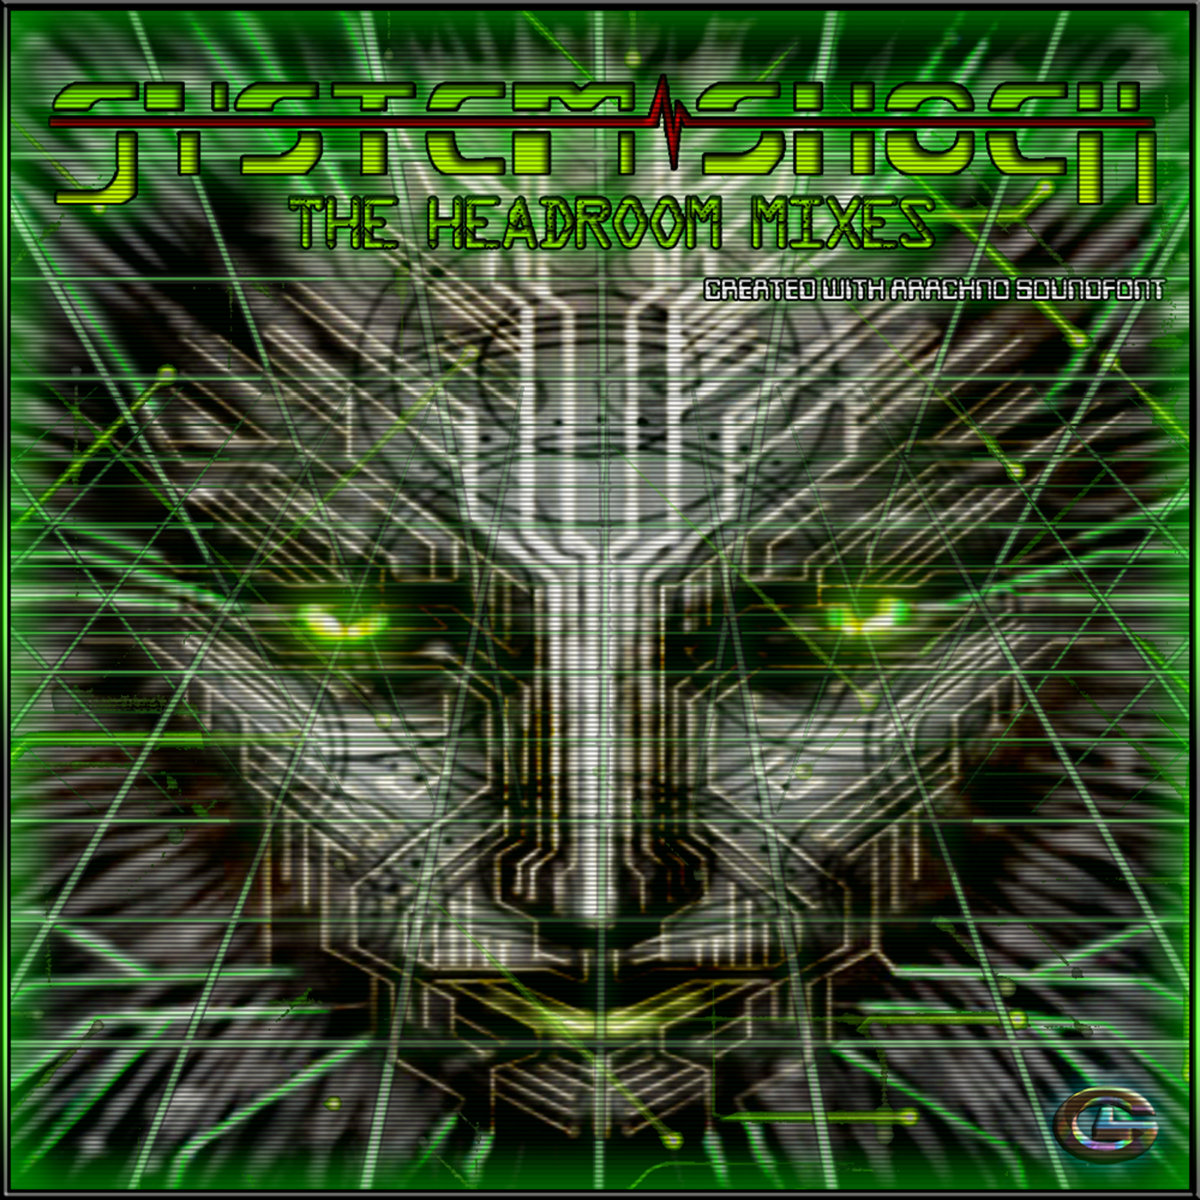 System Shock [The Headroom Mixes] | Crash-Headroom